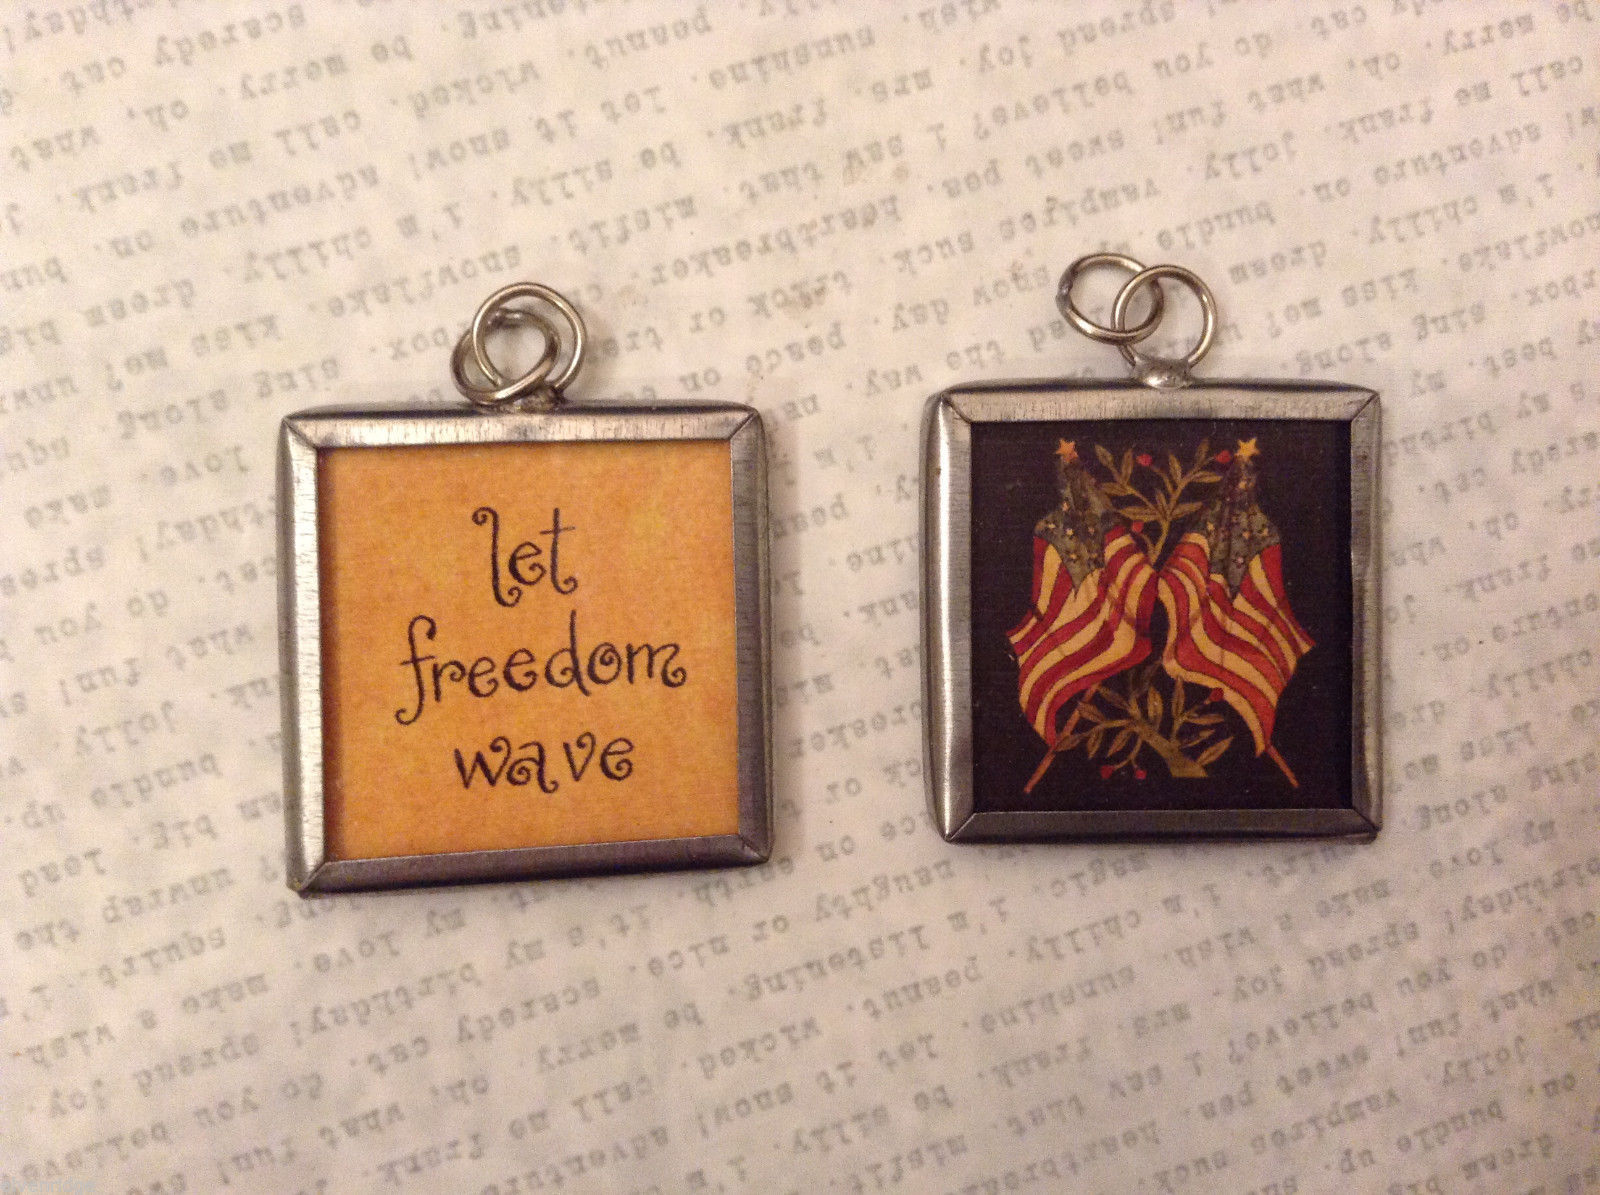 2 sided charm tag pendant vintage style- Let freedom wave/Crossed American flags